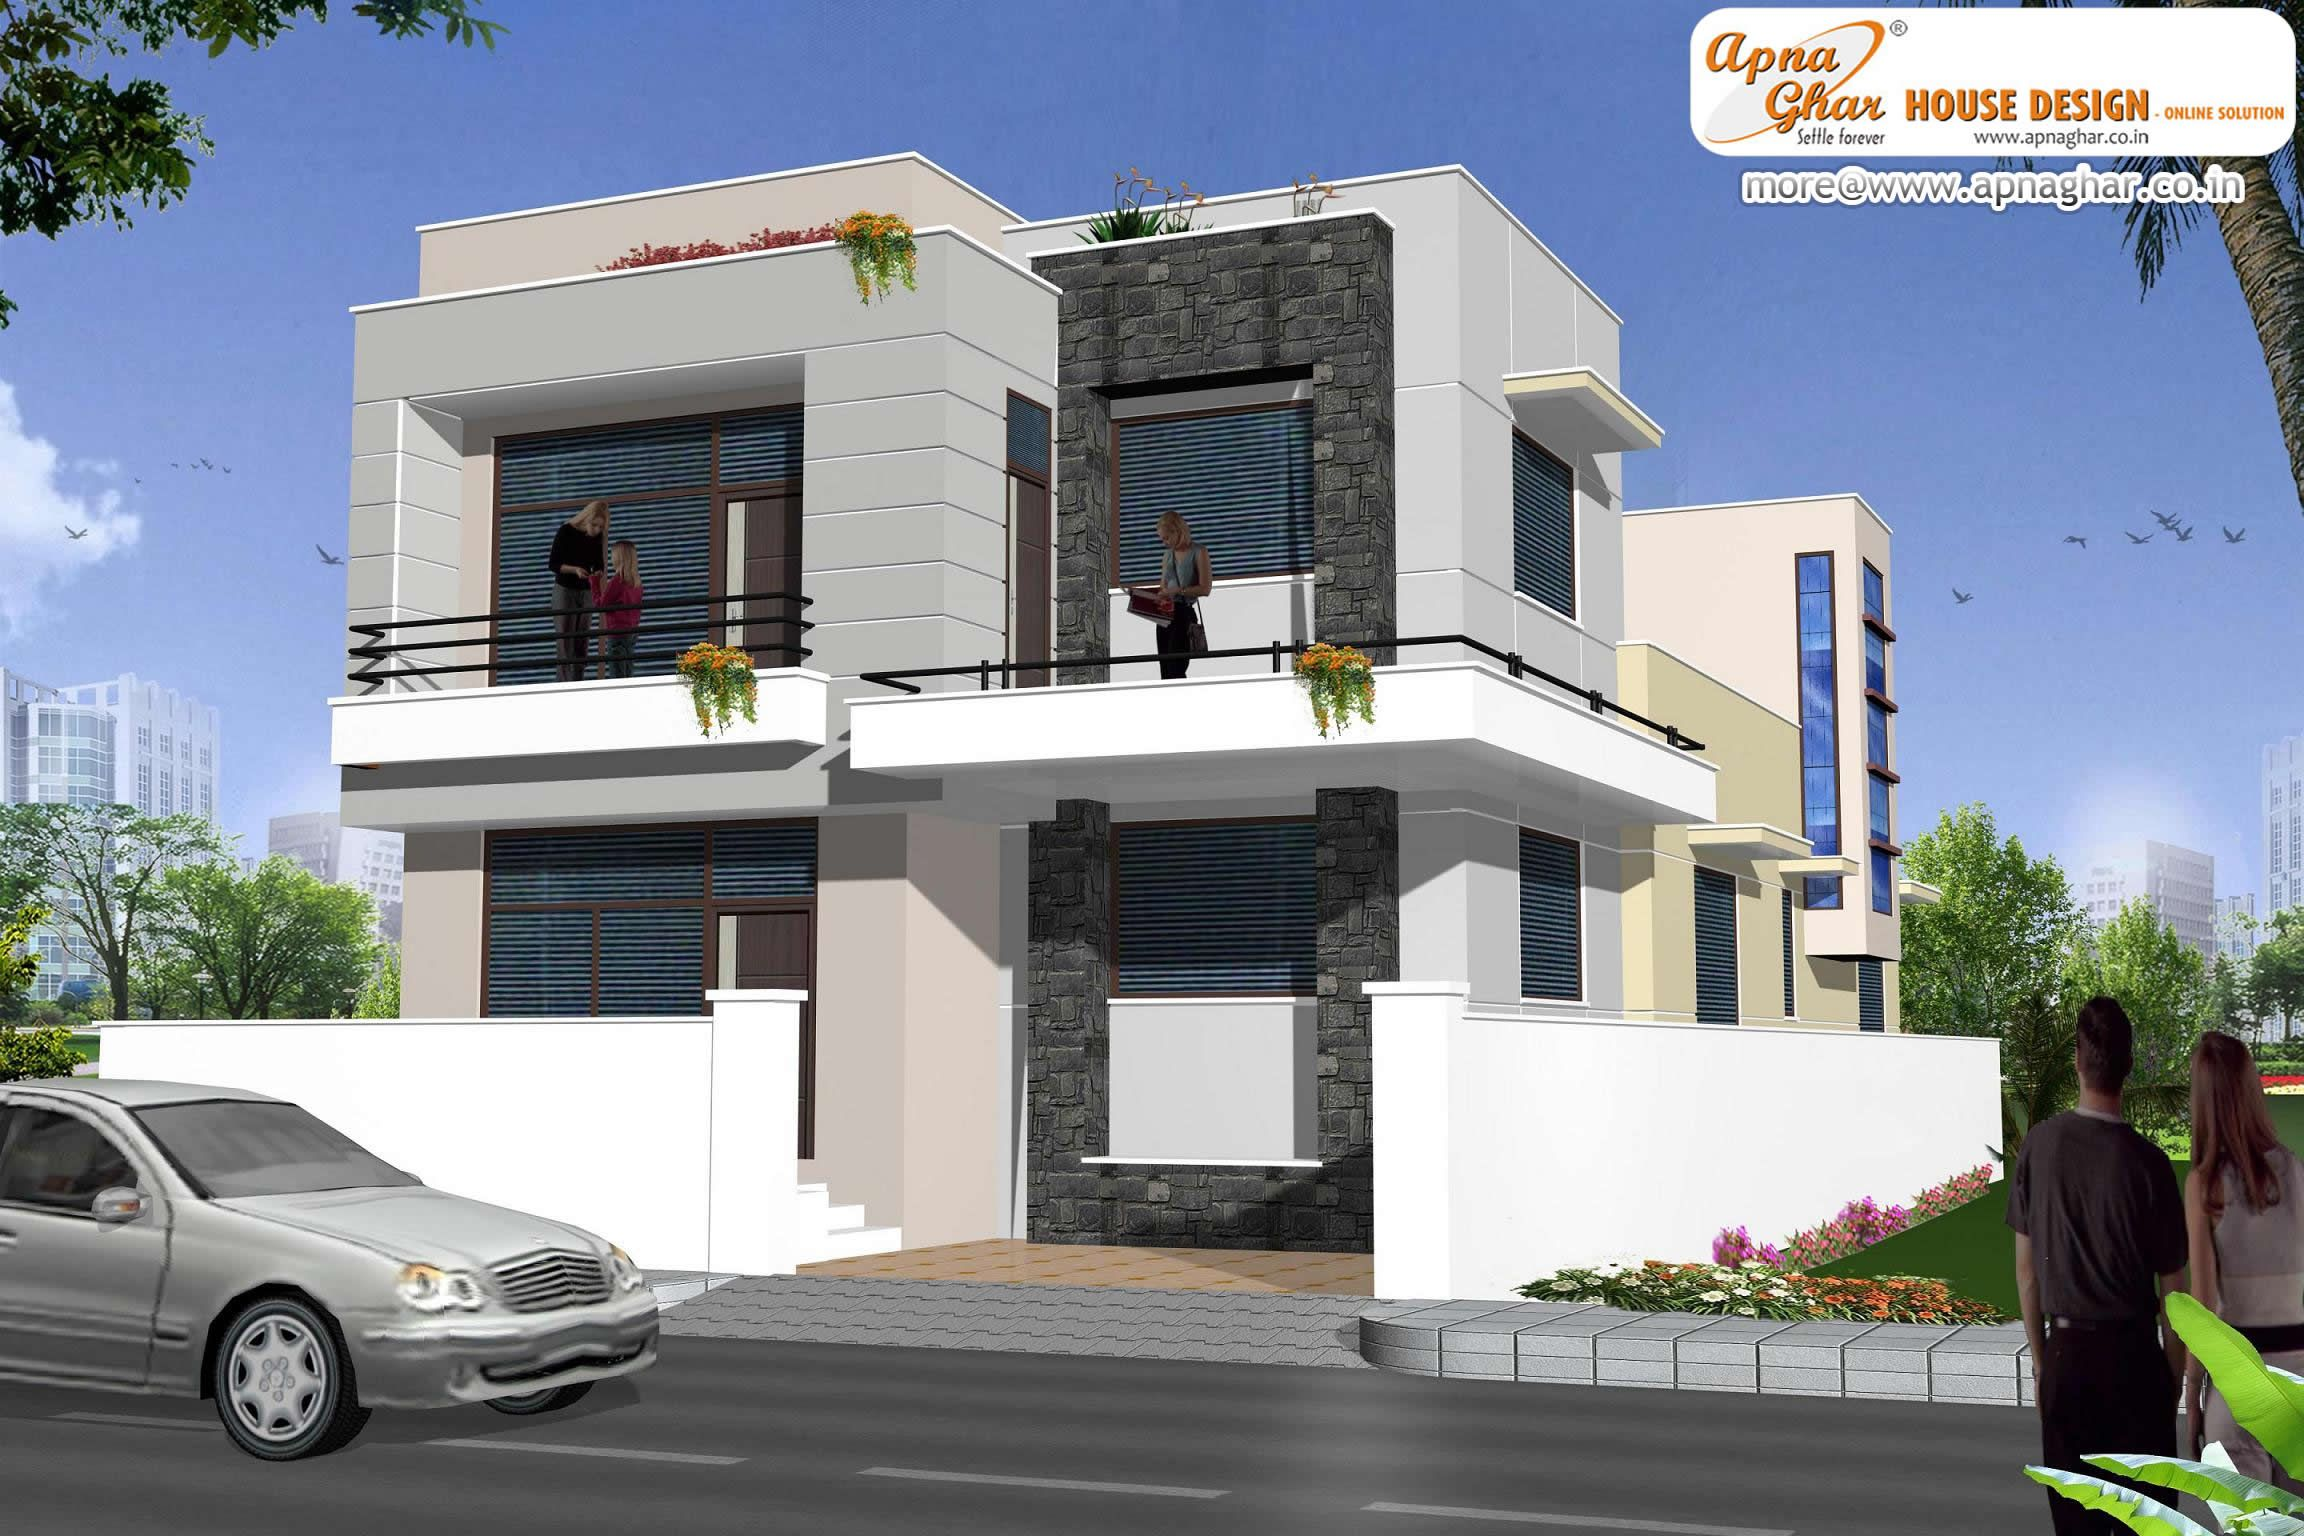 Modern duplex 2 floor house design area 198m2 9m x for Free indian duplex house plans